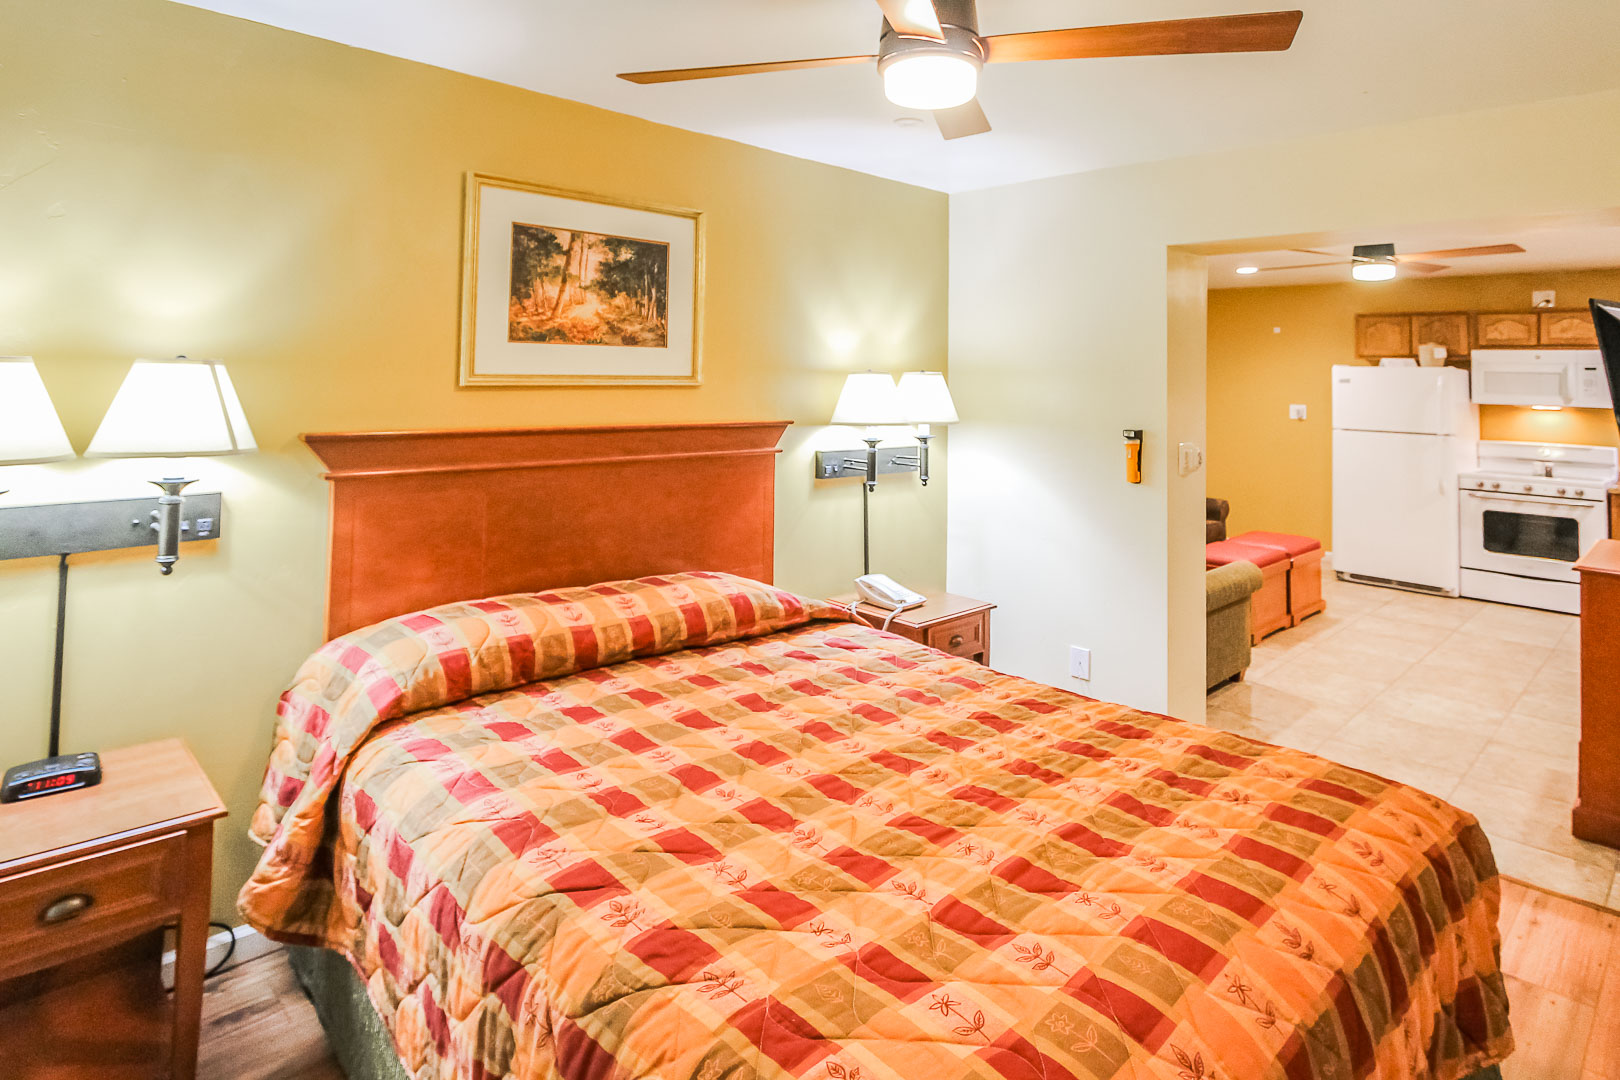 A spacious one bedroom at VRI's Roundhouse Resort in Pinetop, Arizona.